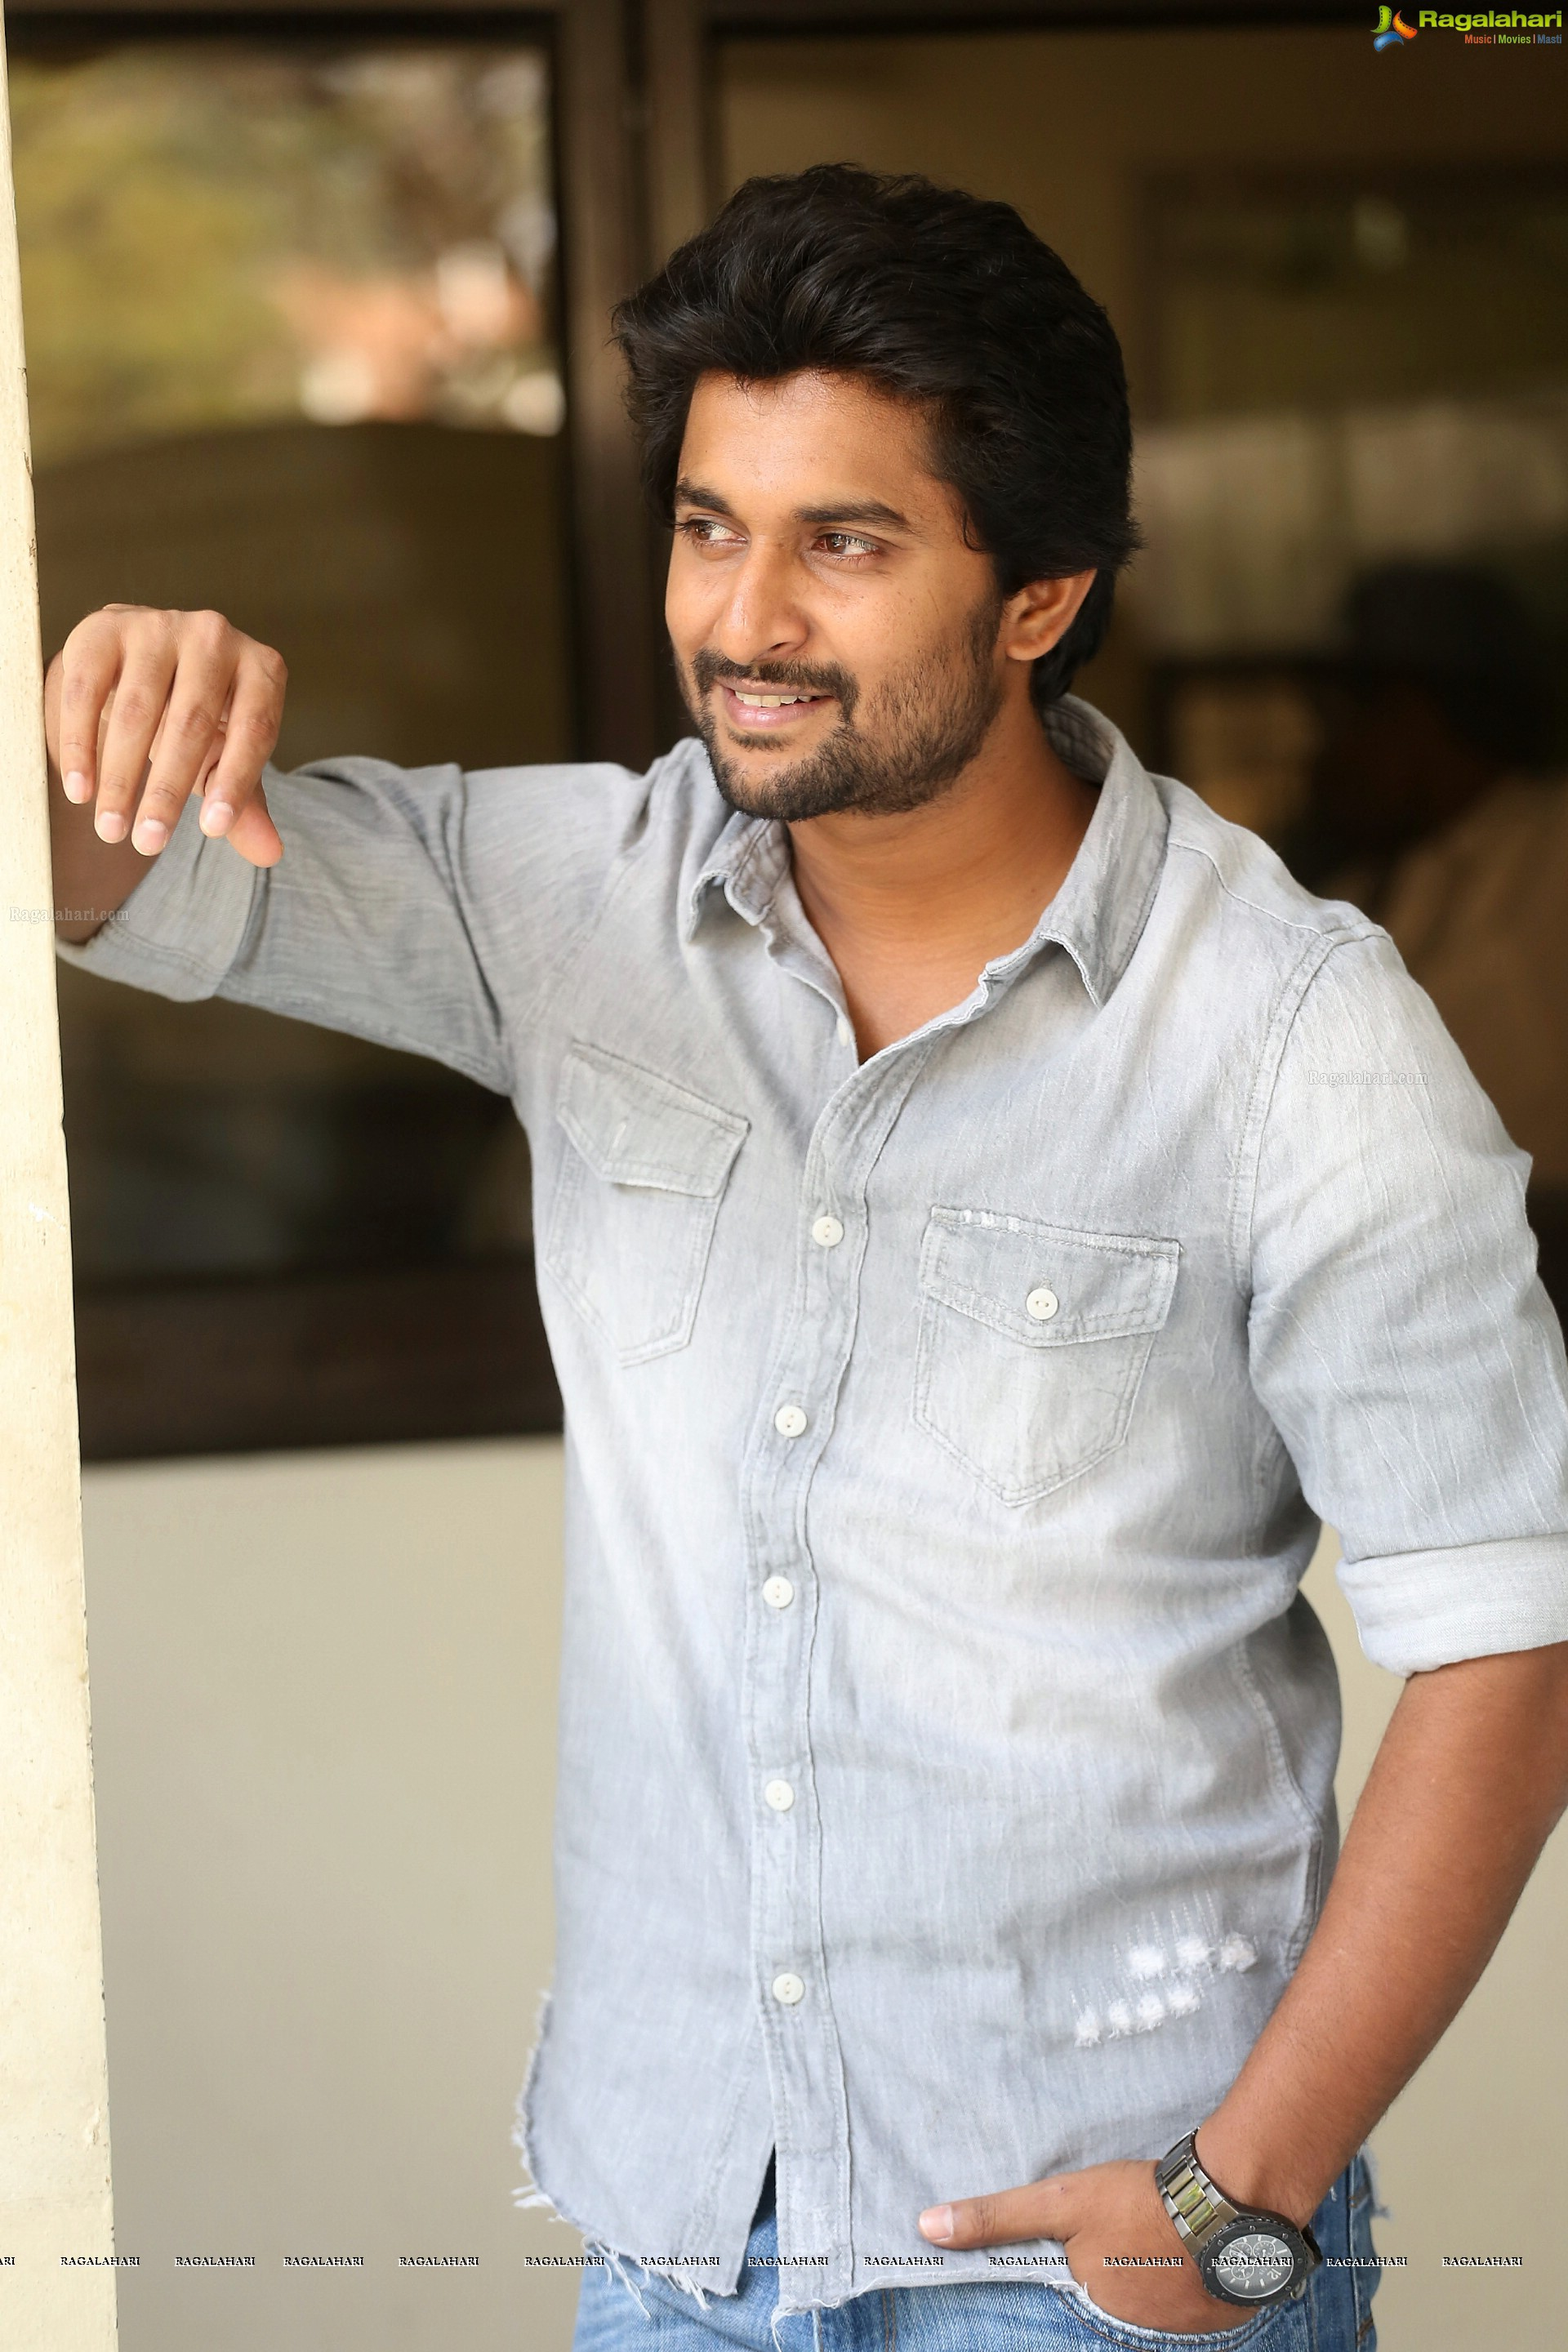 Nani Hd Image 111 Tollywood Actor Galleryimages Pics Pictures